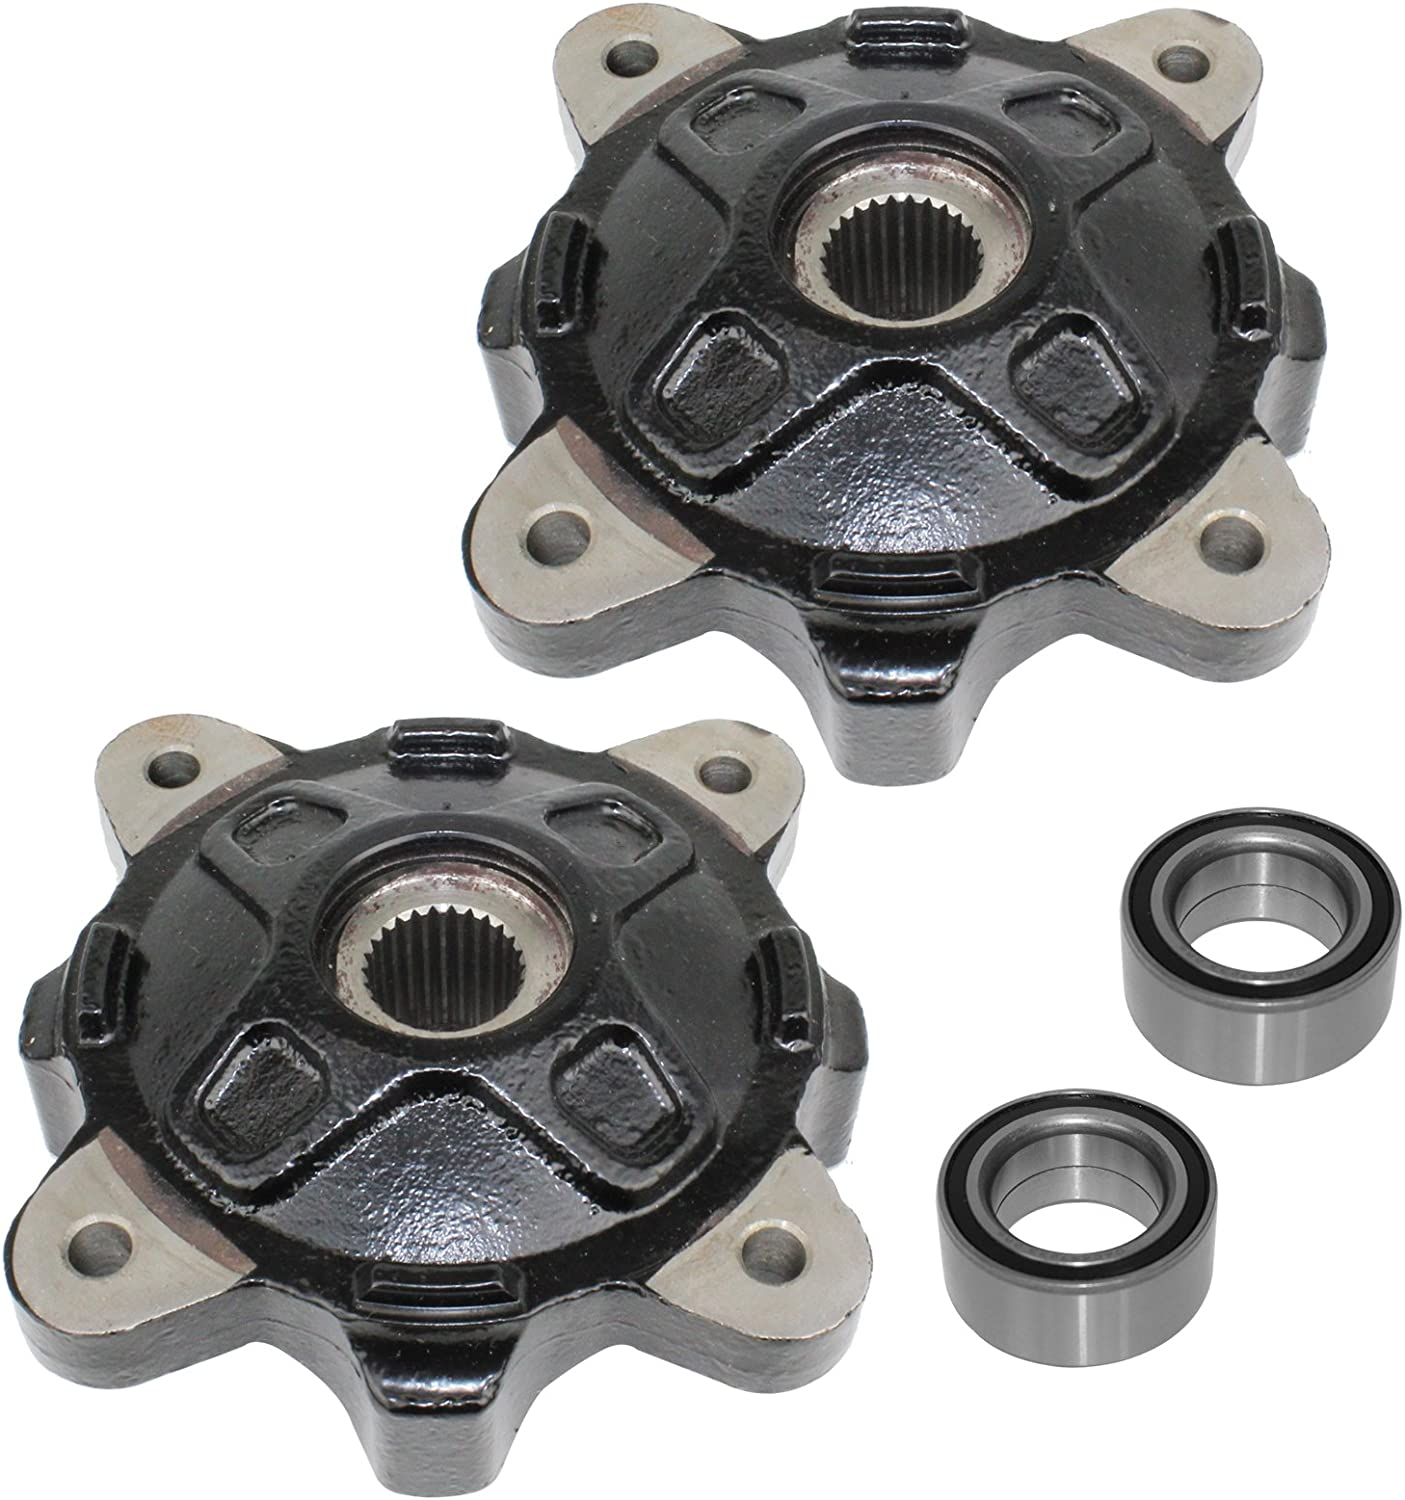 Caltric compatible with Front Left Right List price Wheel Ball Bea And Max 65% OFF Hubs